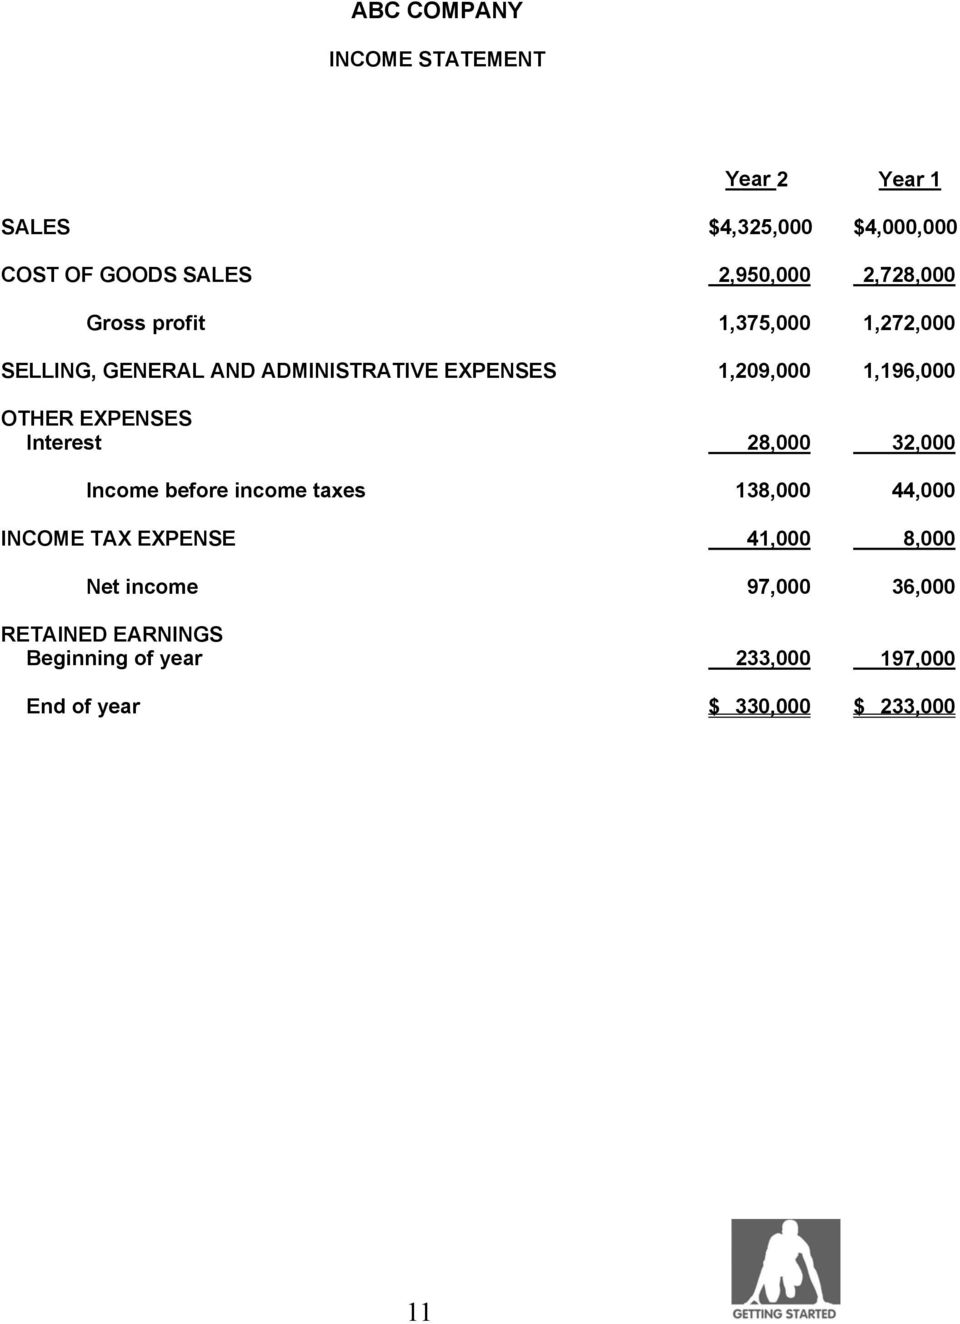 OTHER EXPENSES Interest 28,000 32,000 Income before income taxes 138,000 44,000 INCOME TAX EXPENSE 41,000